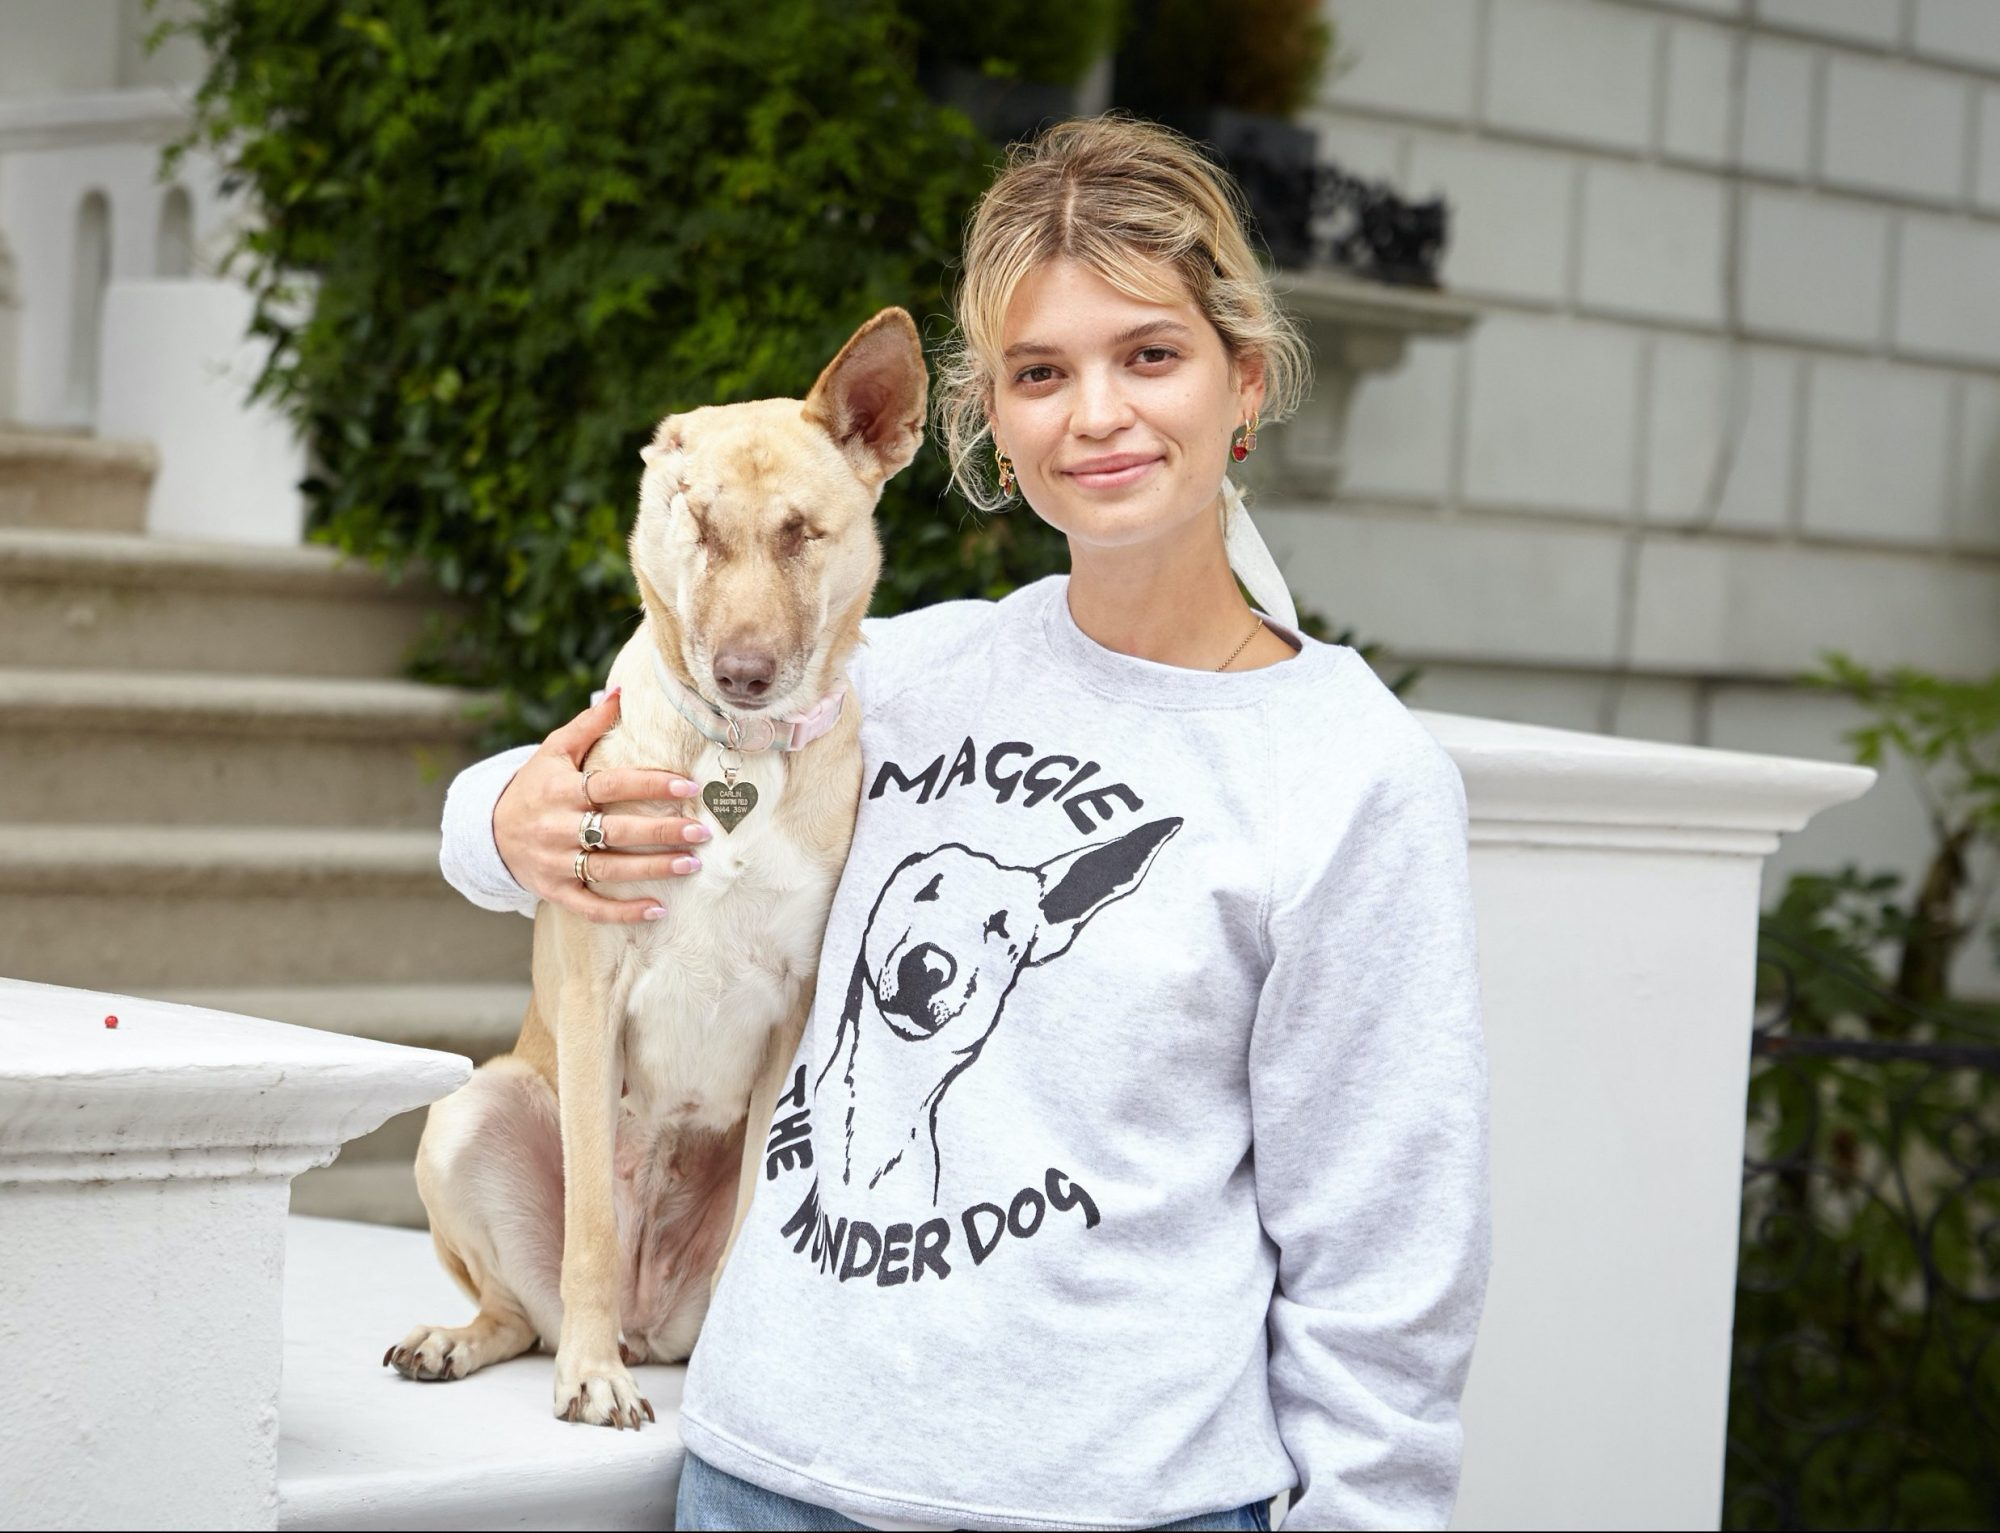 Profits from the Maggie the Wunderdog sweatshirt support our project work in Lebanon